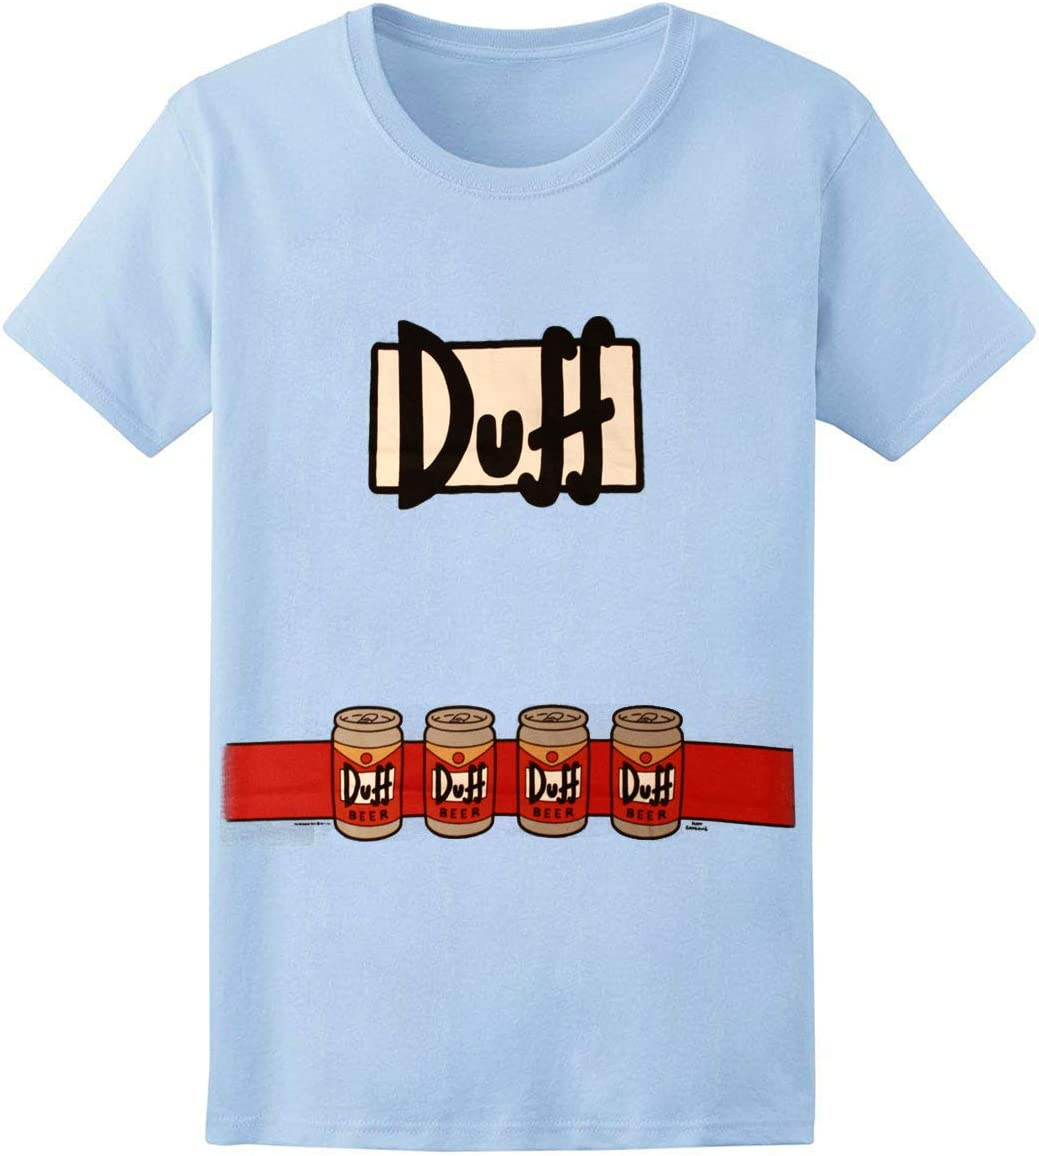 The Simpsons Duffman - Camiseta de Manga Corta para Adulto, diseño ...